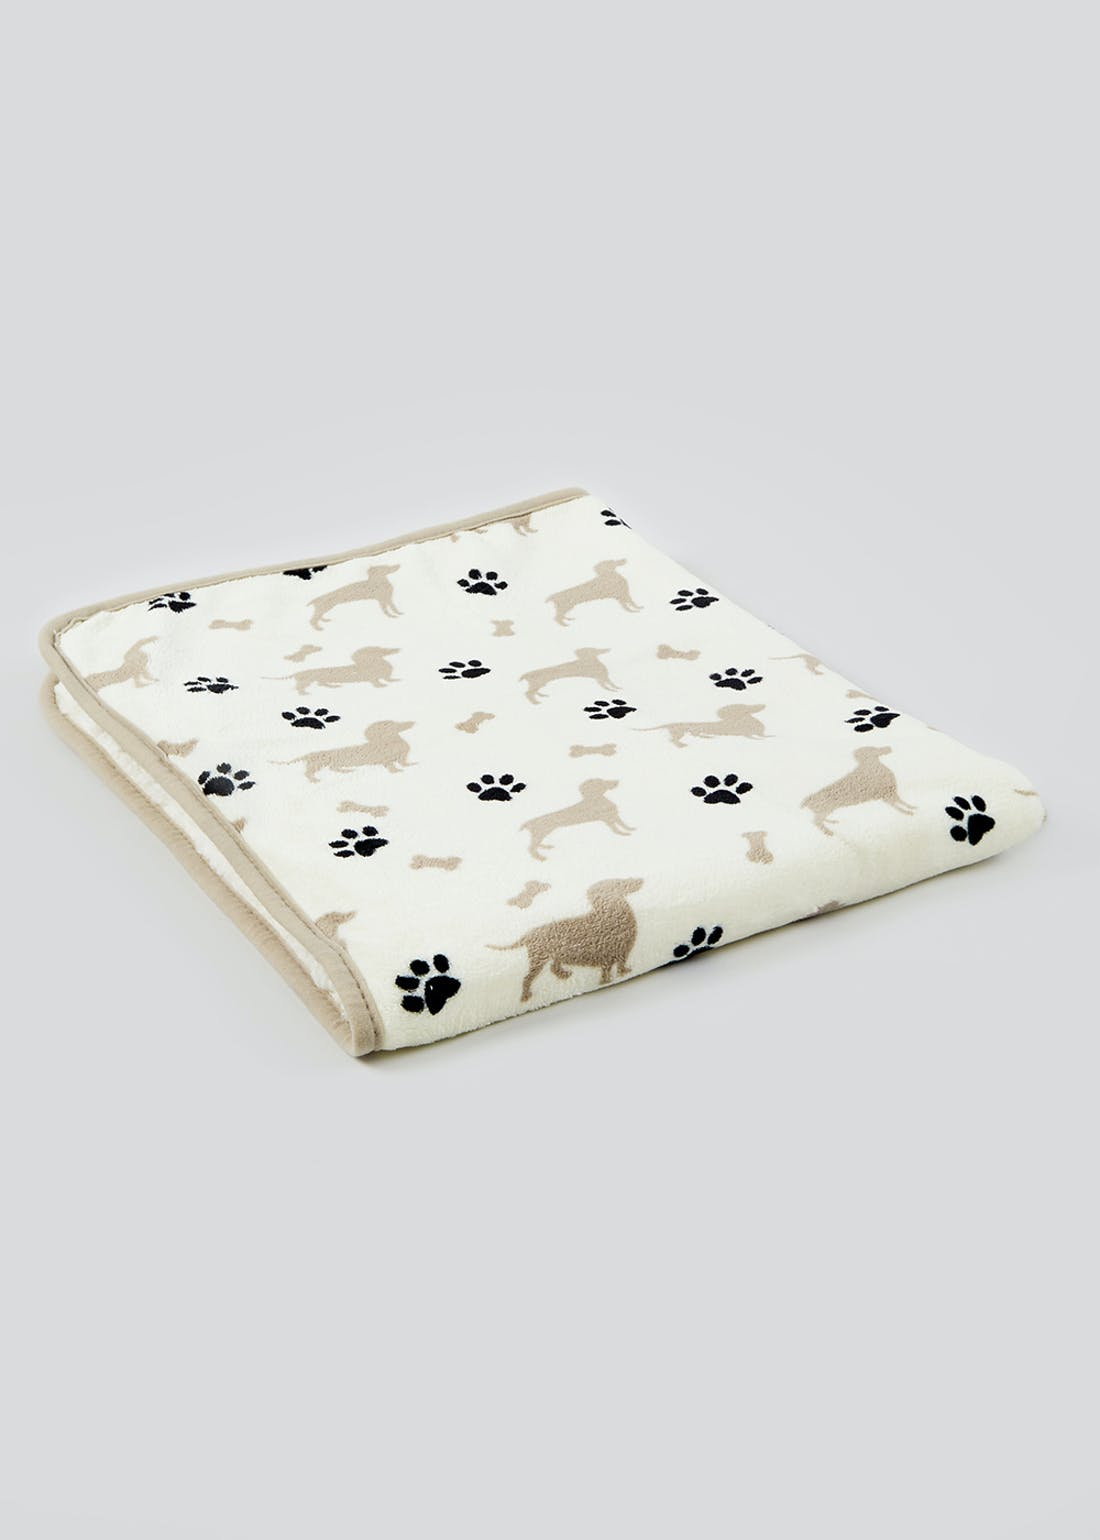 Dog Print Fleece Throw Blanket (120cm x 80cm)